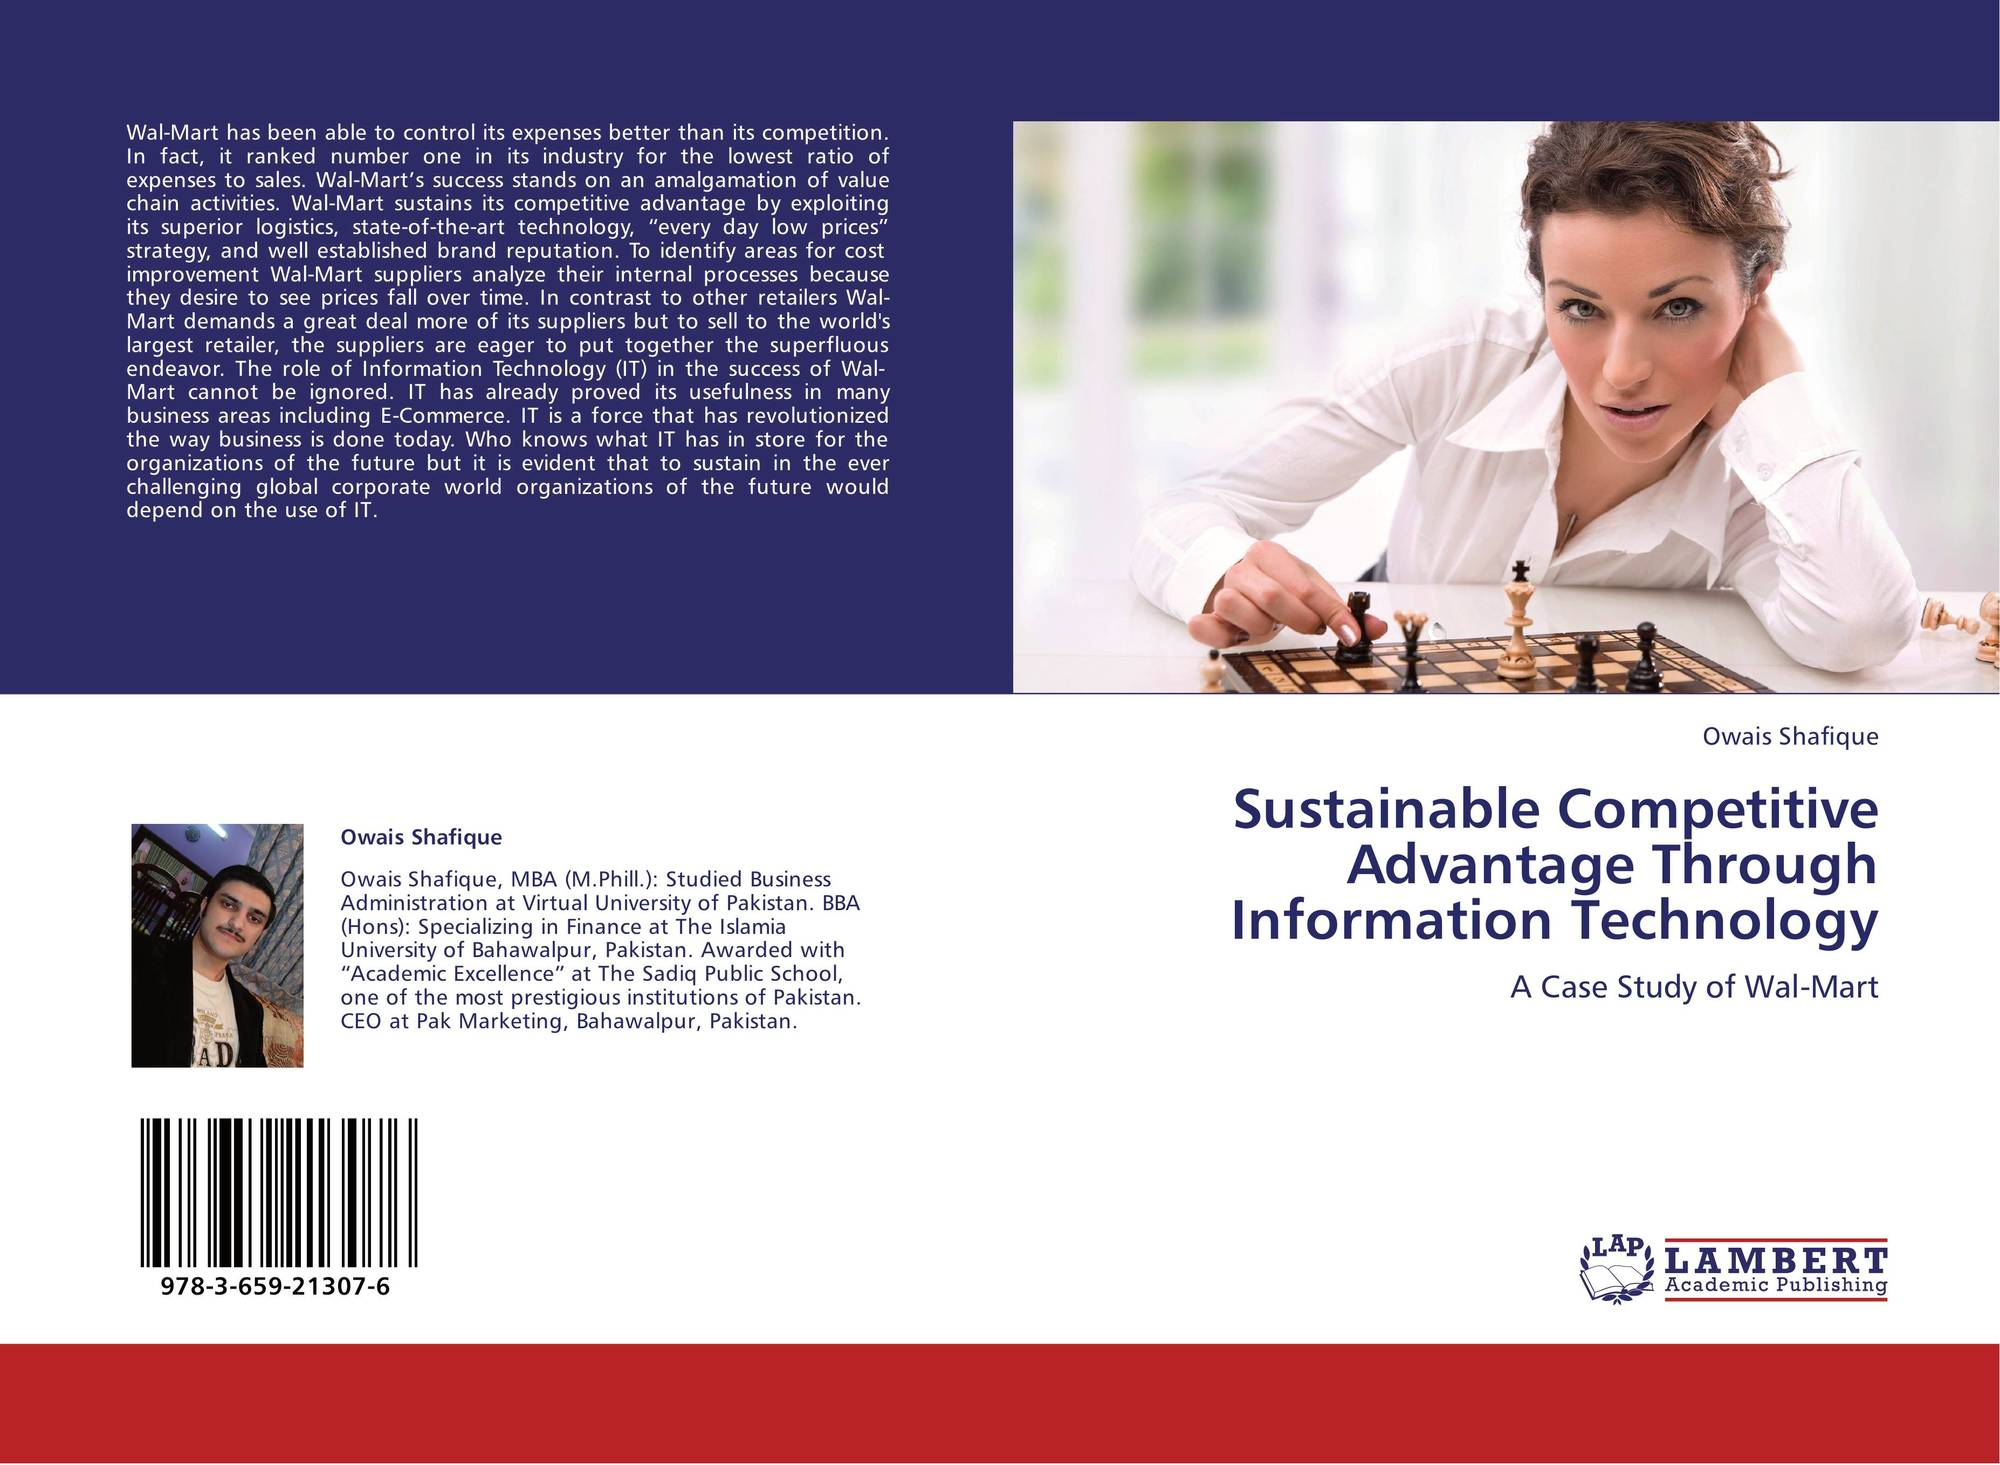 a study of sustainable business advantage Strategic human resources management and sustainable focus on strategic human resources management issues is competitive advantage for the business.